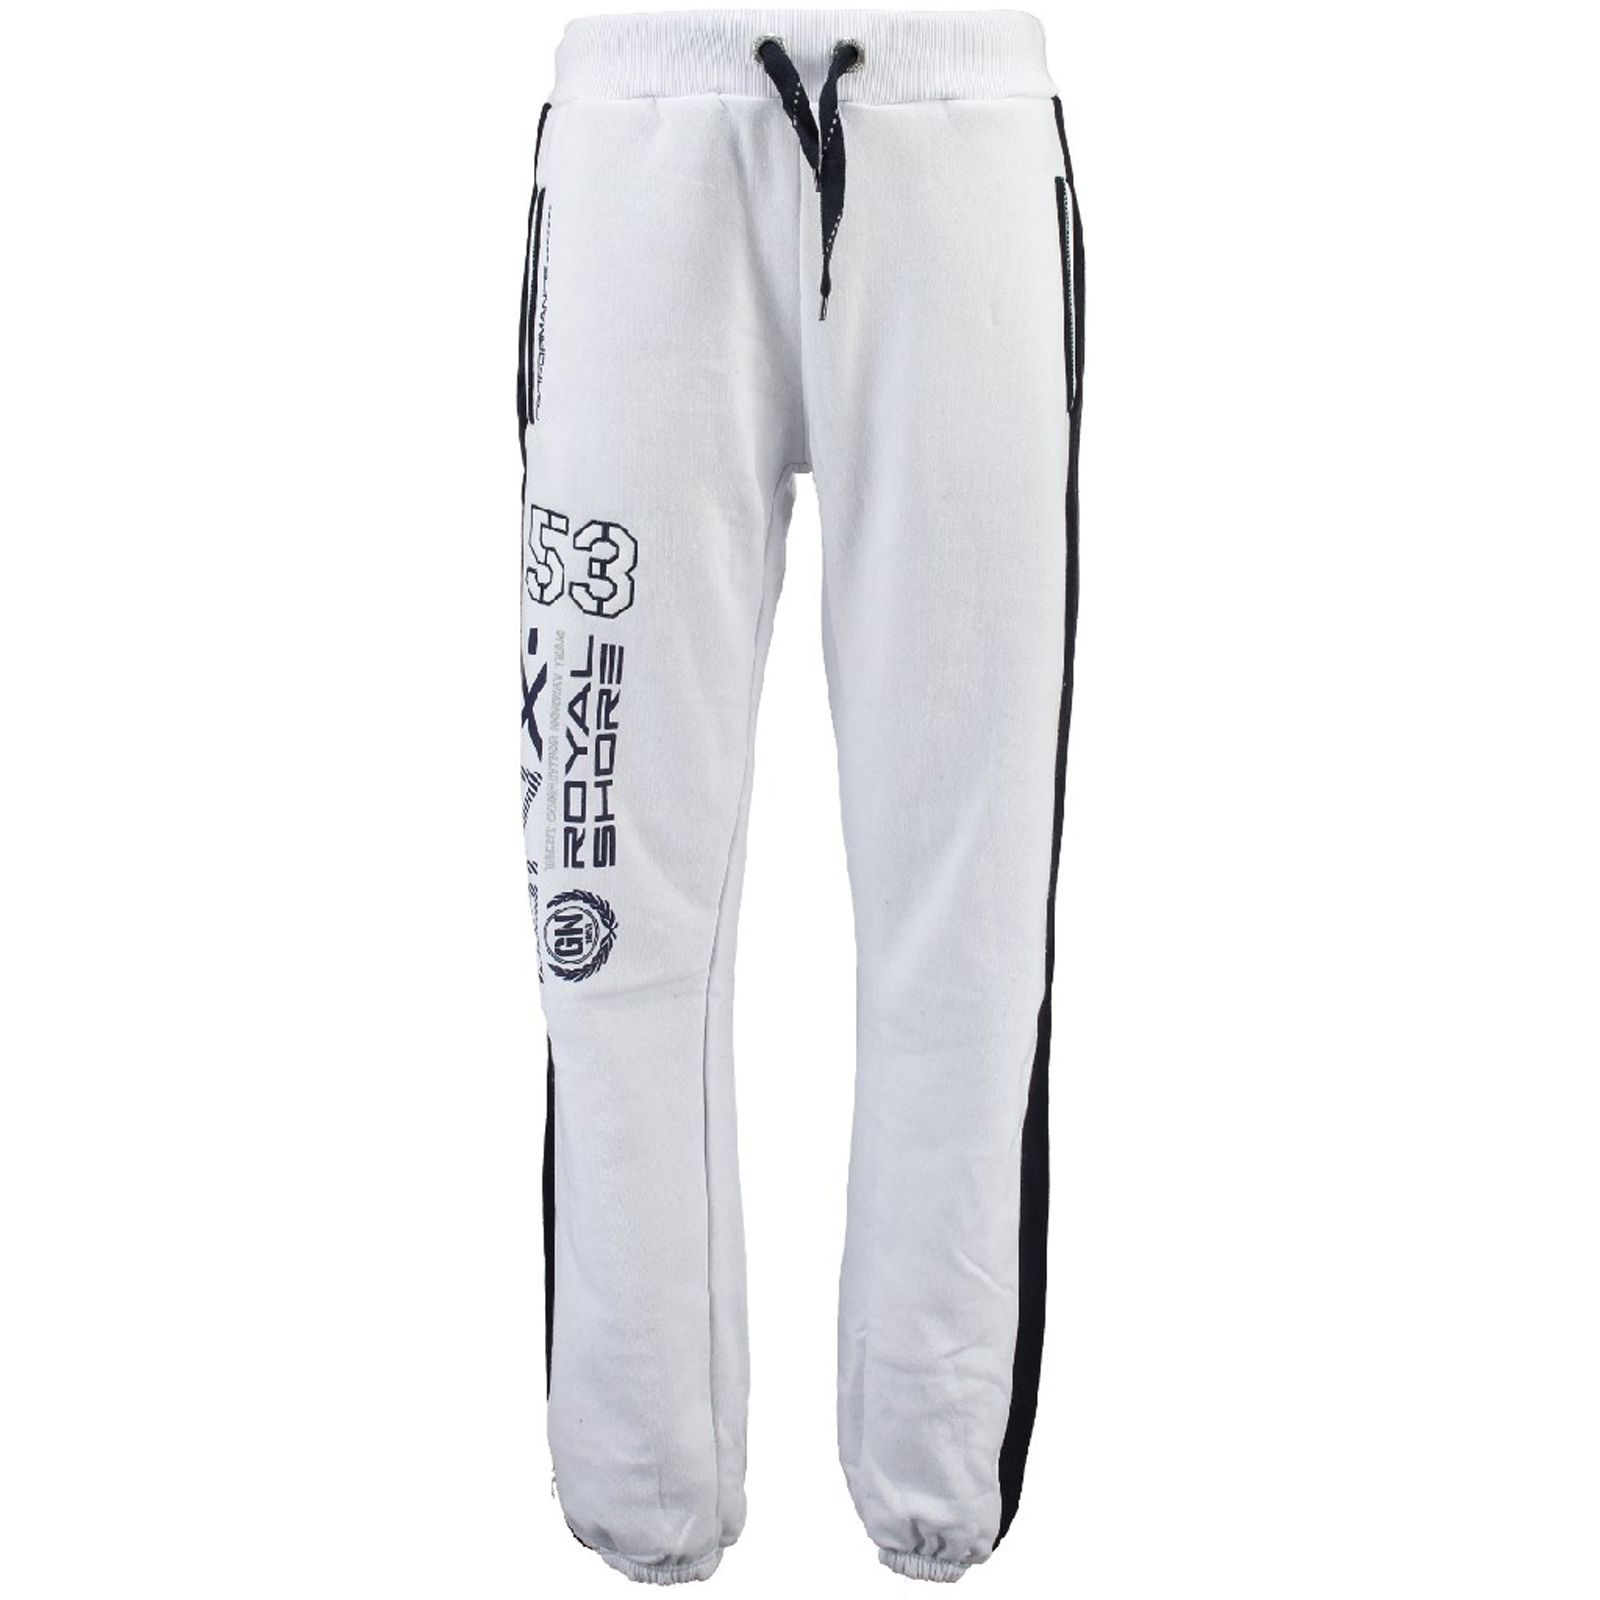 geographical norway mapping pantalon jogging blanc brandalley. Black Bedroom Furniture Sets. Home Design Ideas